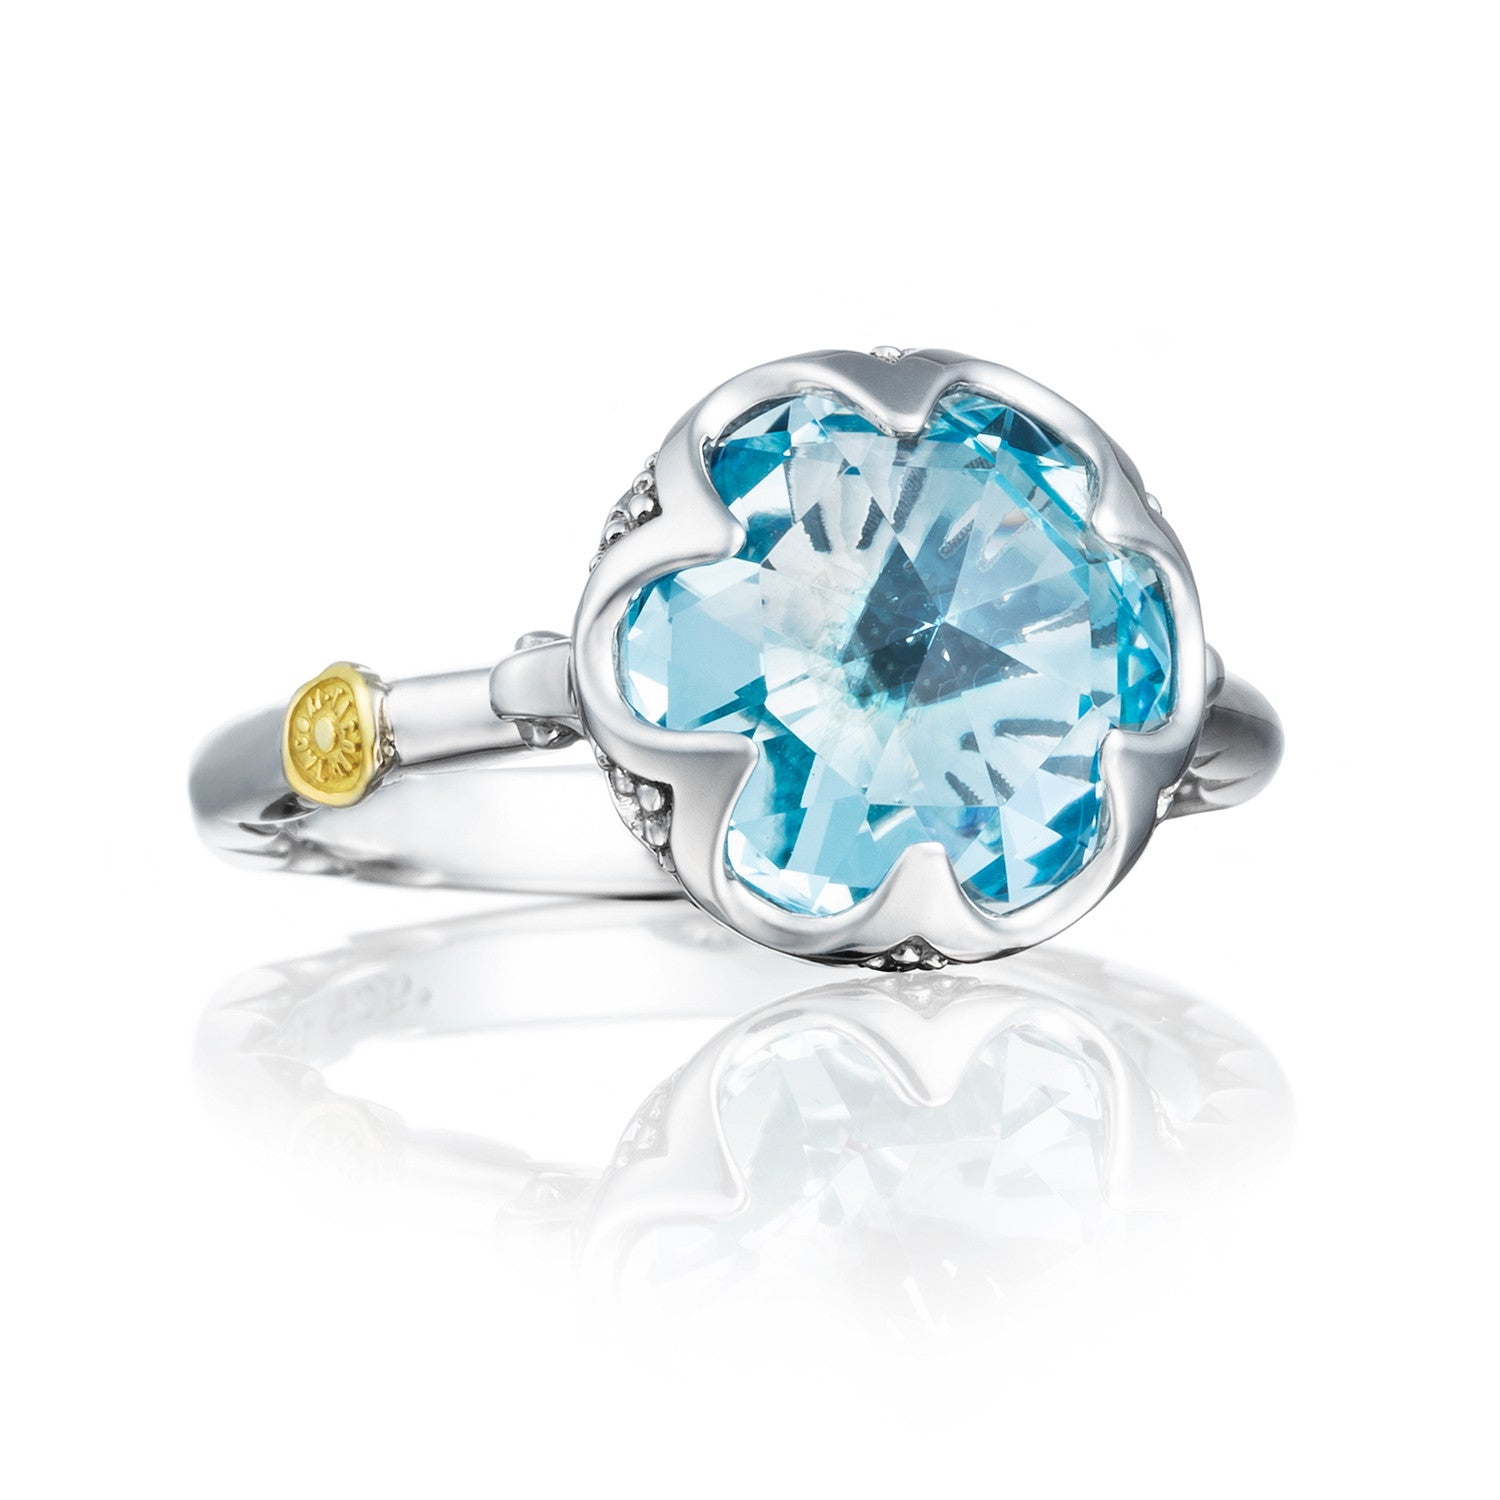 london topaz rings page ring november white birthstone gold and diamond cut blue cushion jewellery